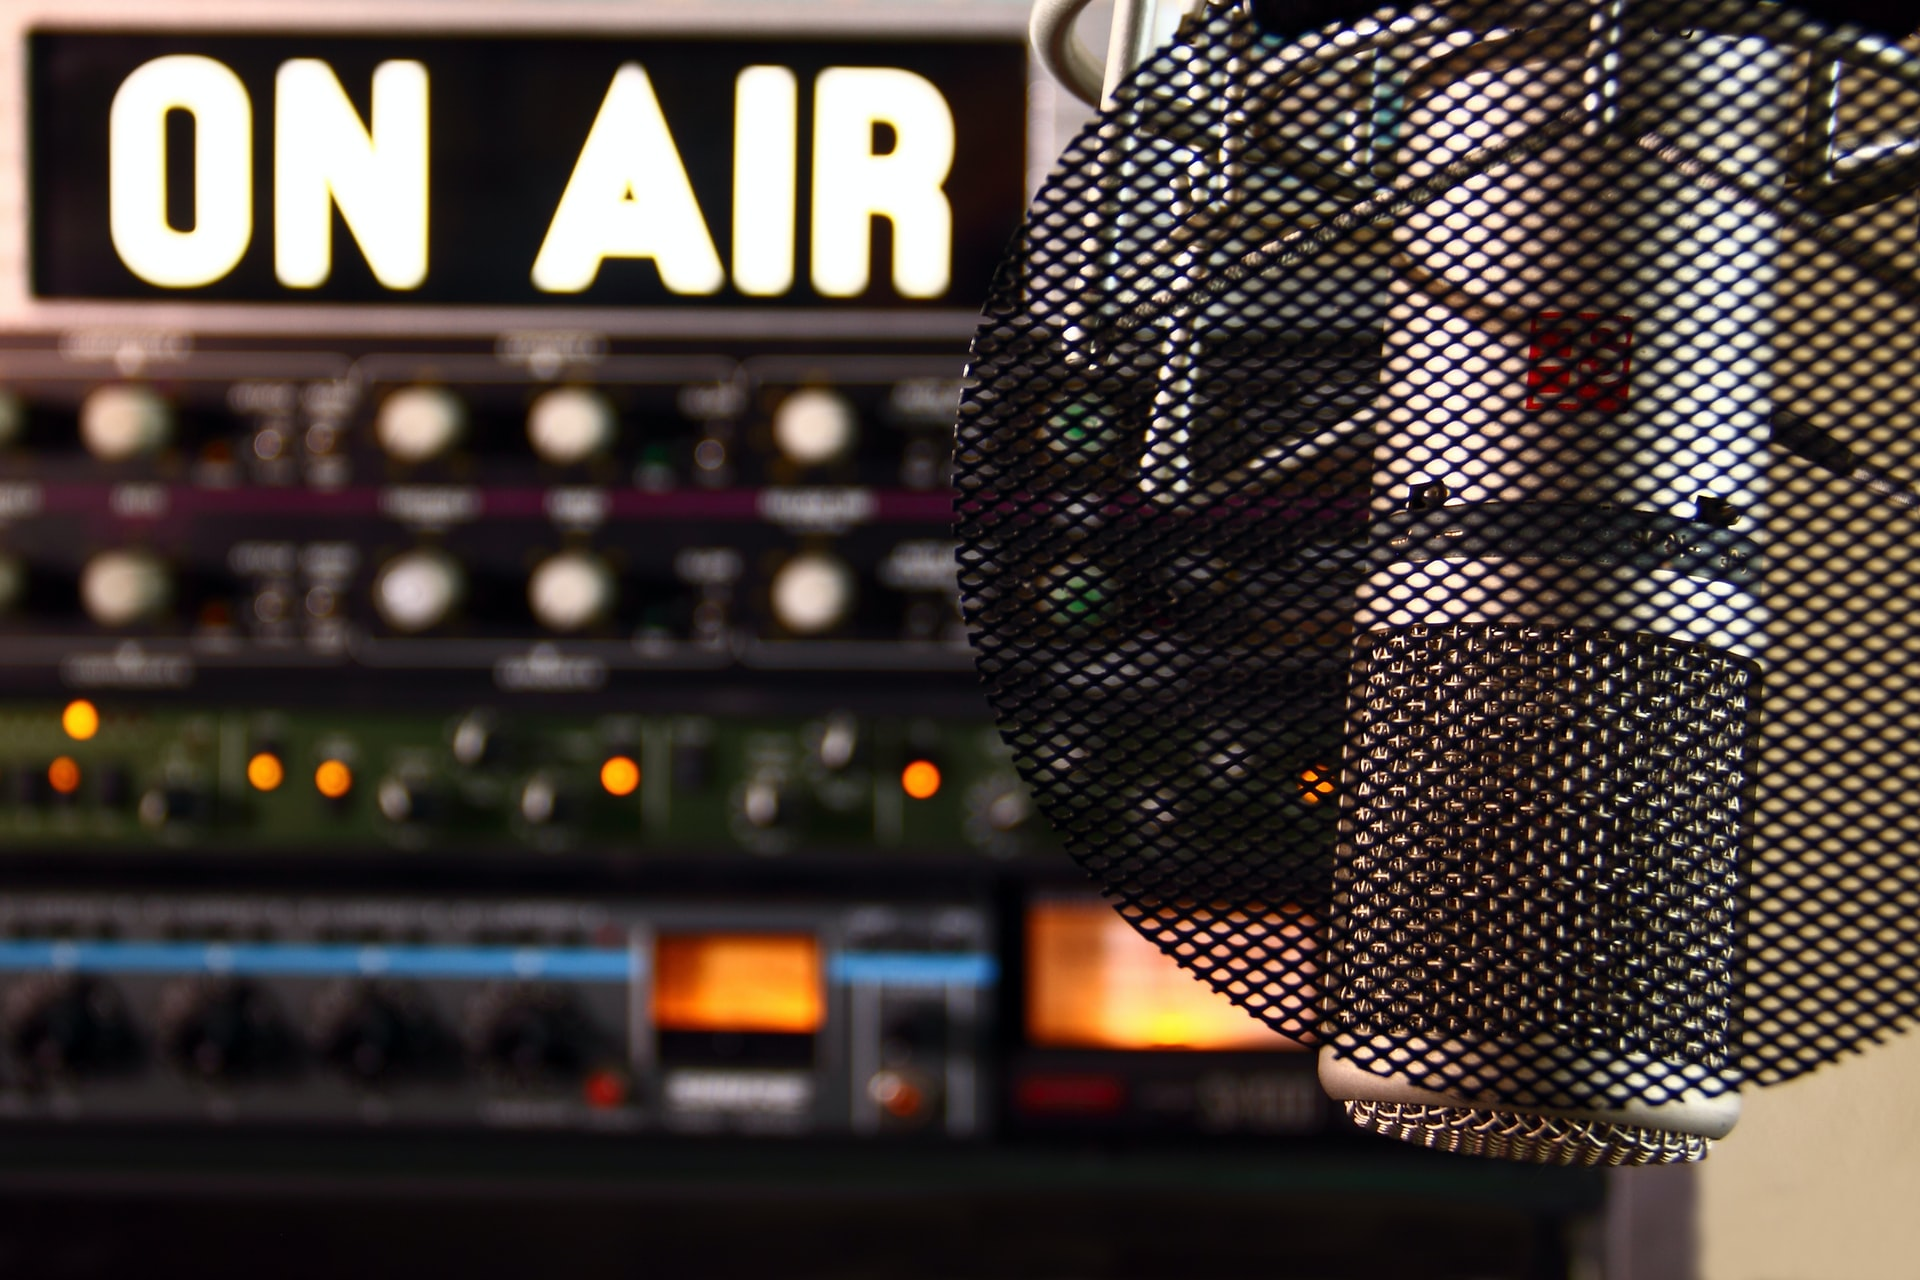 microphone & outboard audio gear